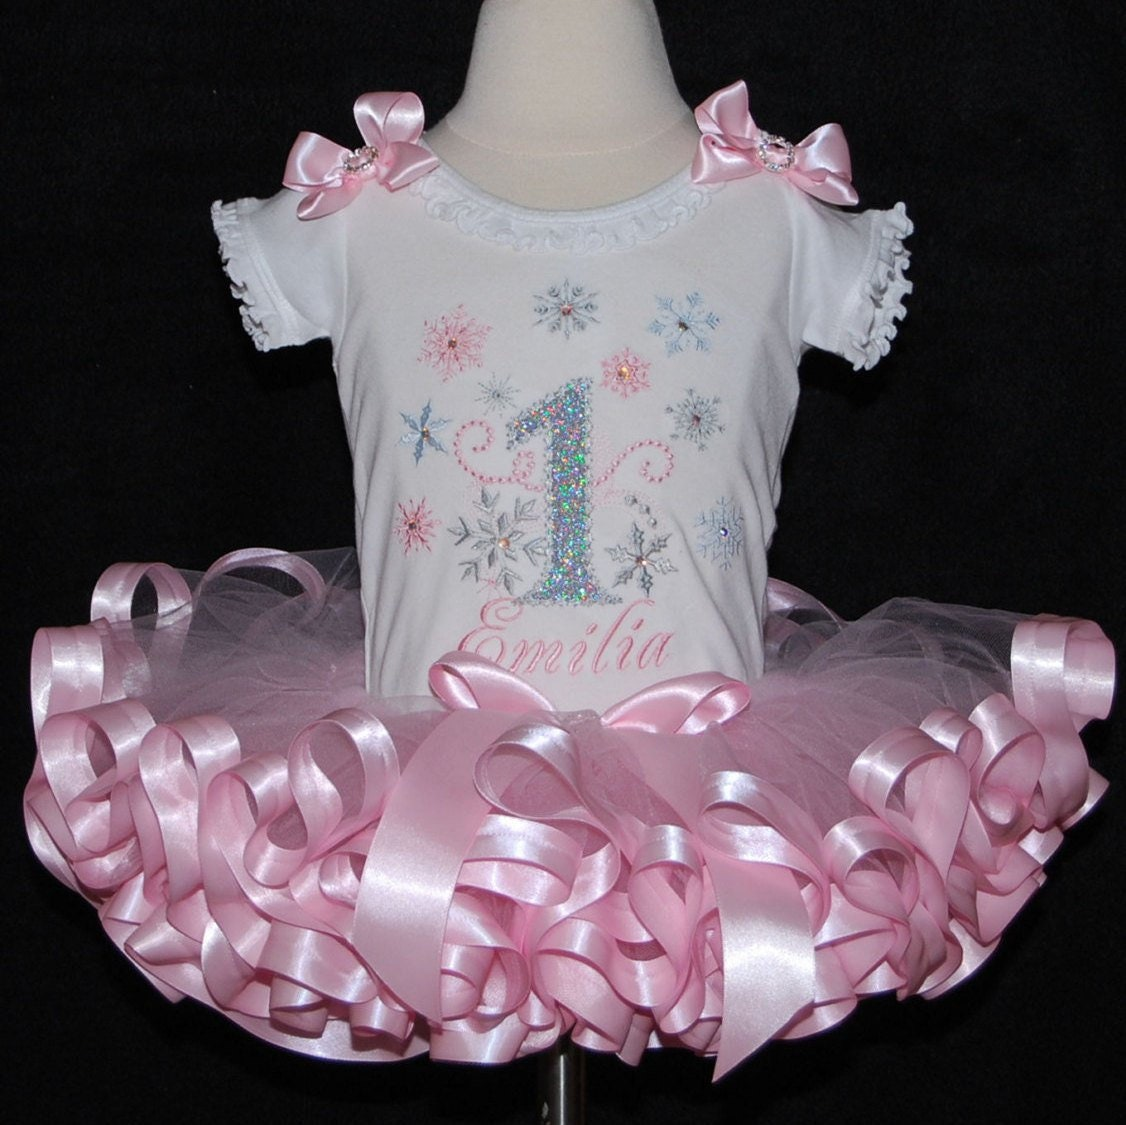 Winter onederland birthday outfit, ribbon trim tutu outfit, baby girl 1st birthday outfit, 1st birthday girl outfit, toddler tutu dress